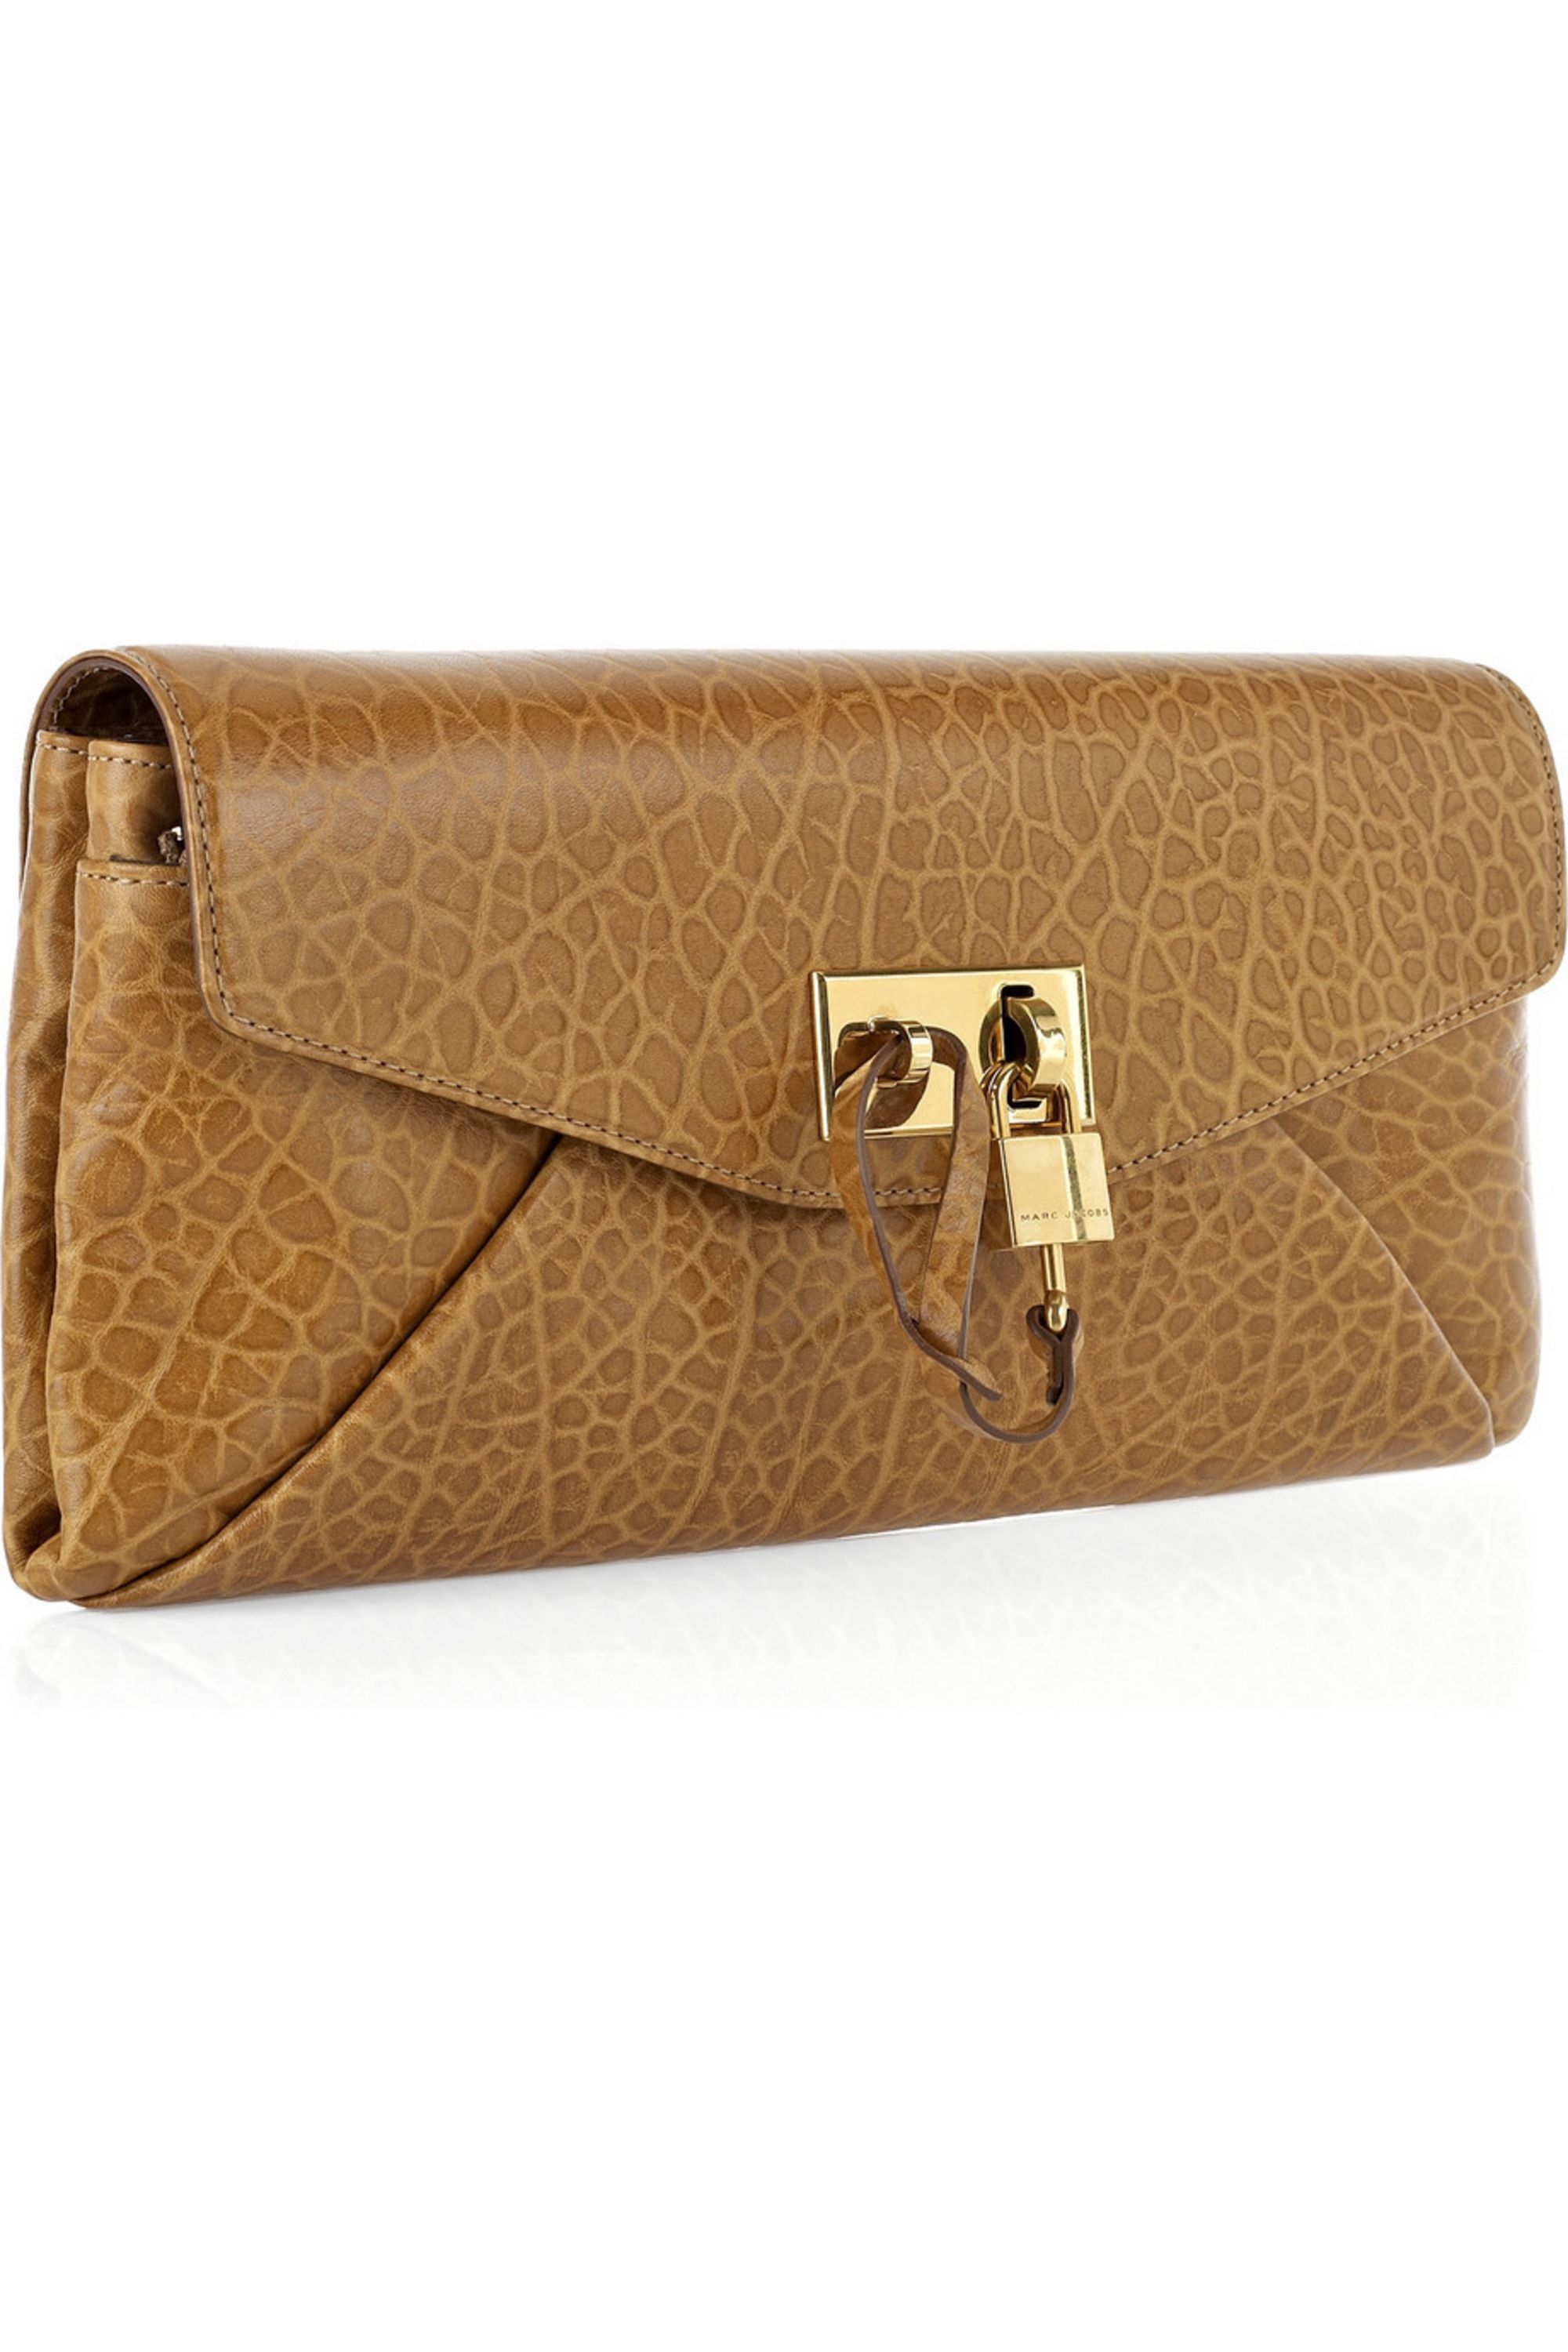 Runway Marc Jacobs Leather clutch